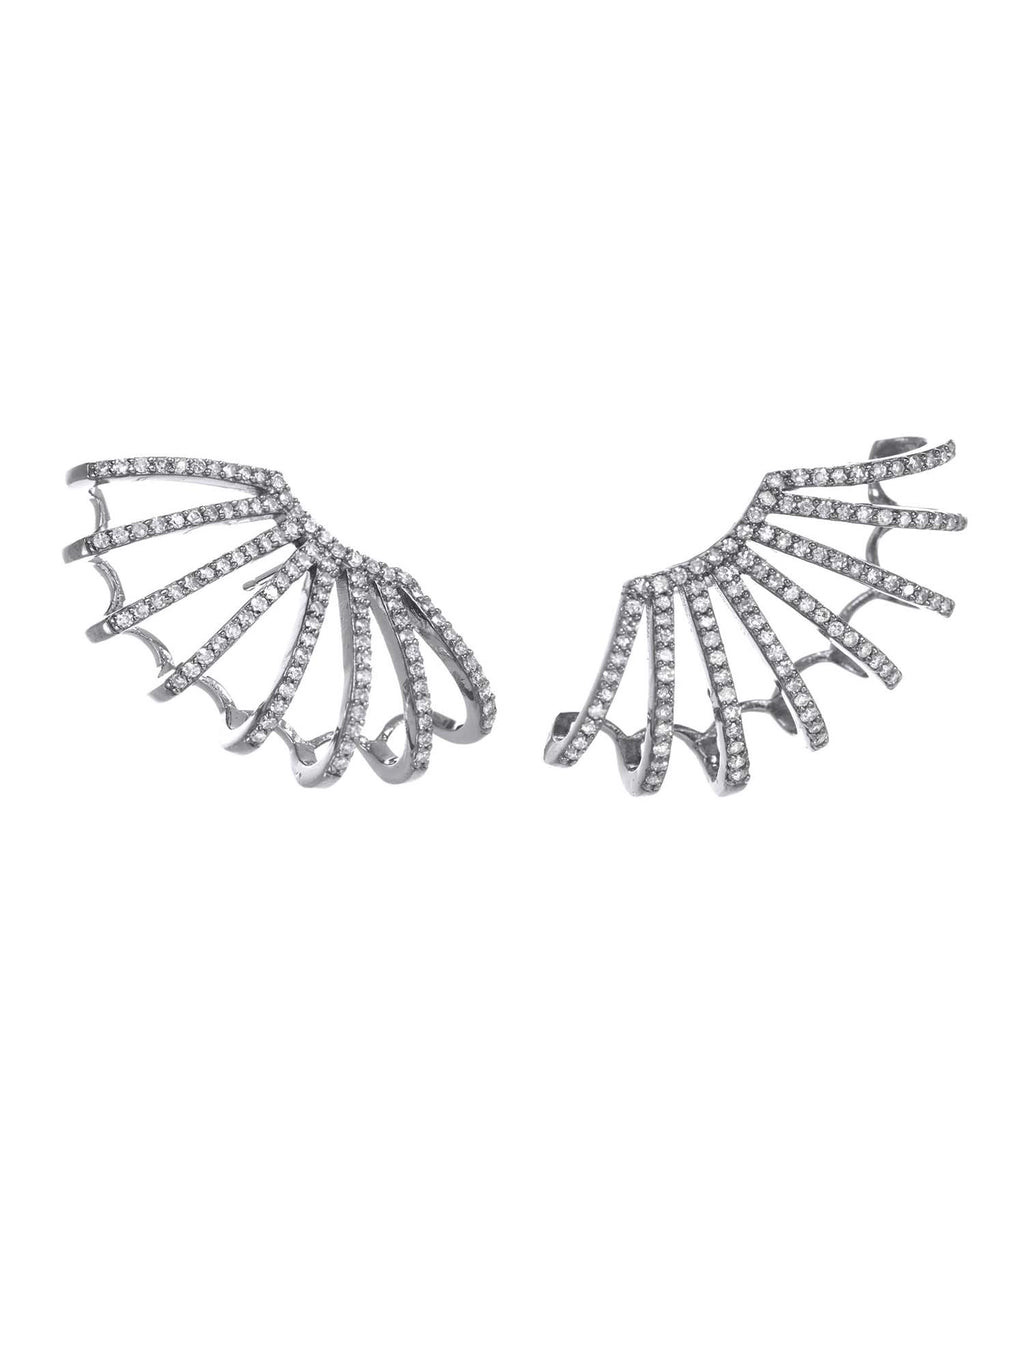 Margo Morrison Cage Diamond Earrings